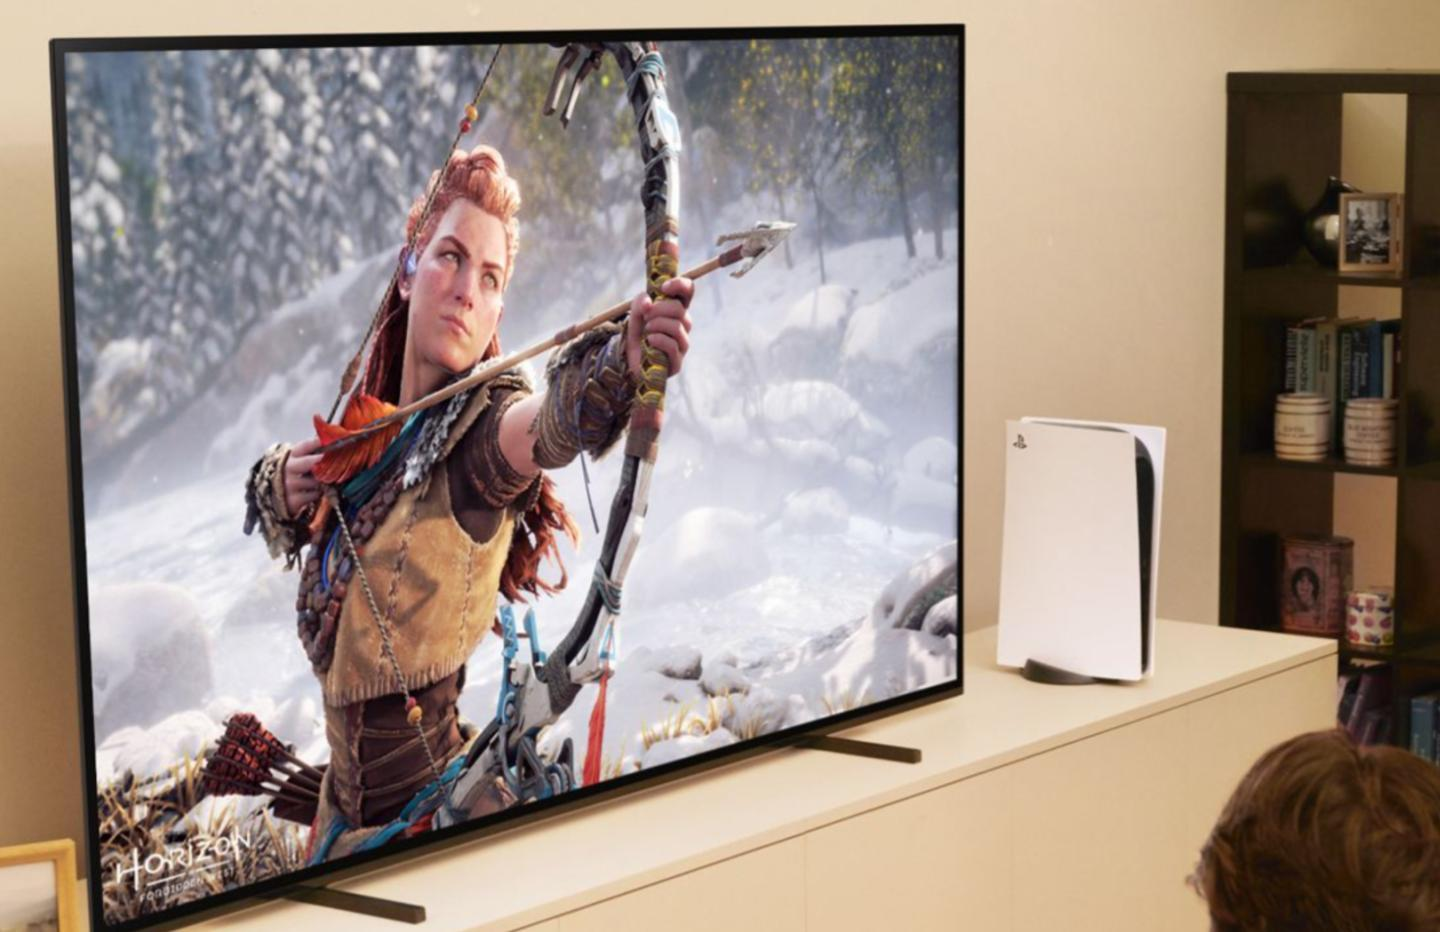 Sony Bravia XR : les TV «Perfect for PlayStation 5» sont en forte promotion